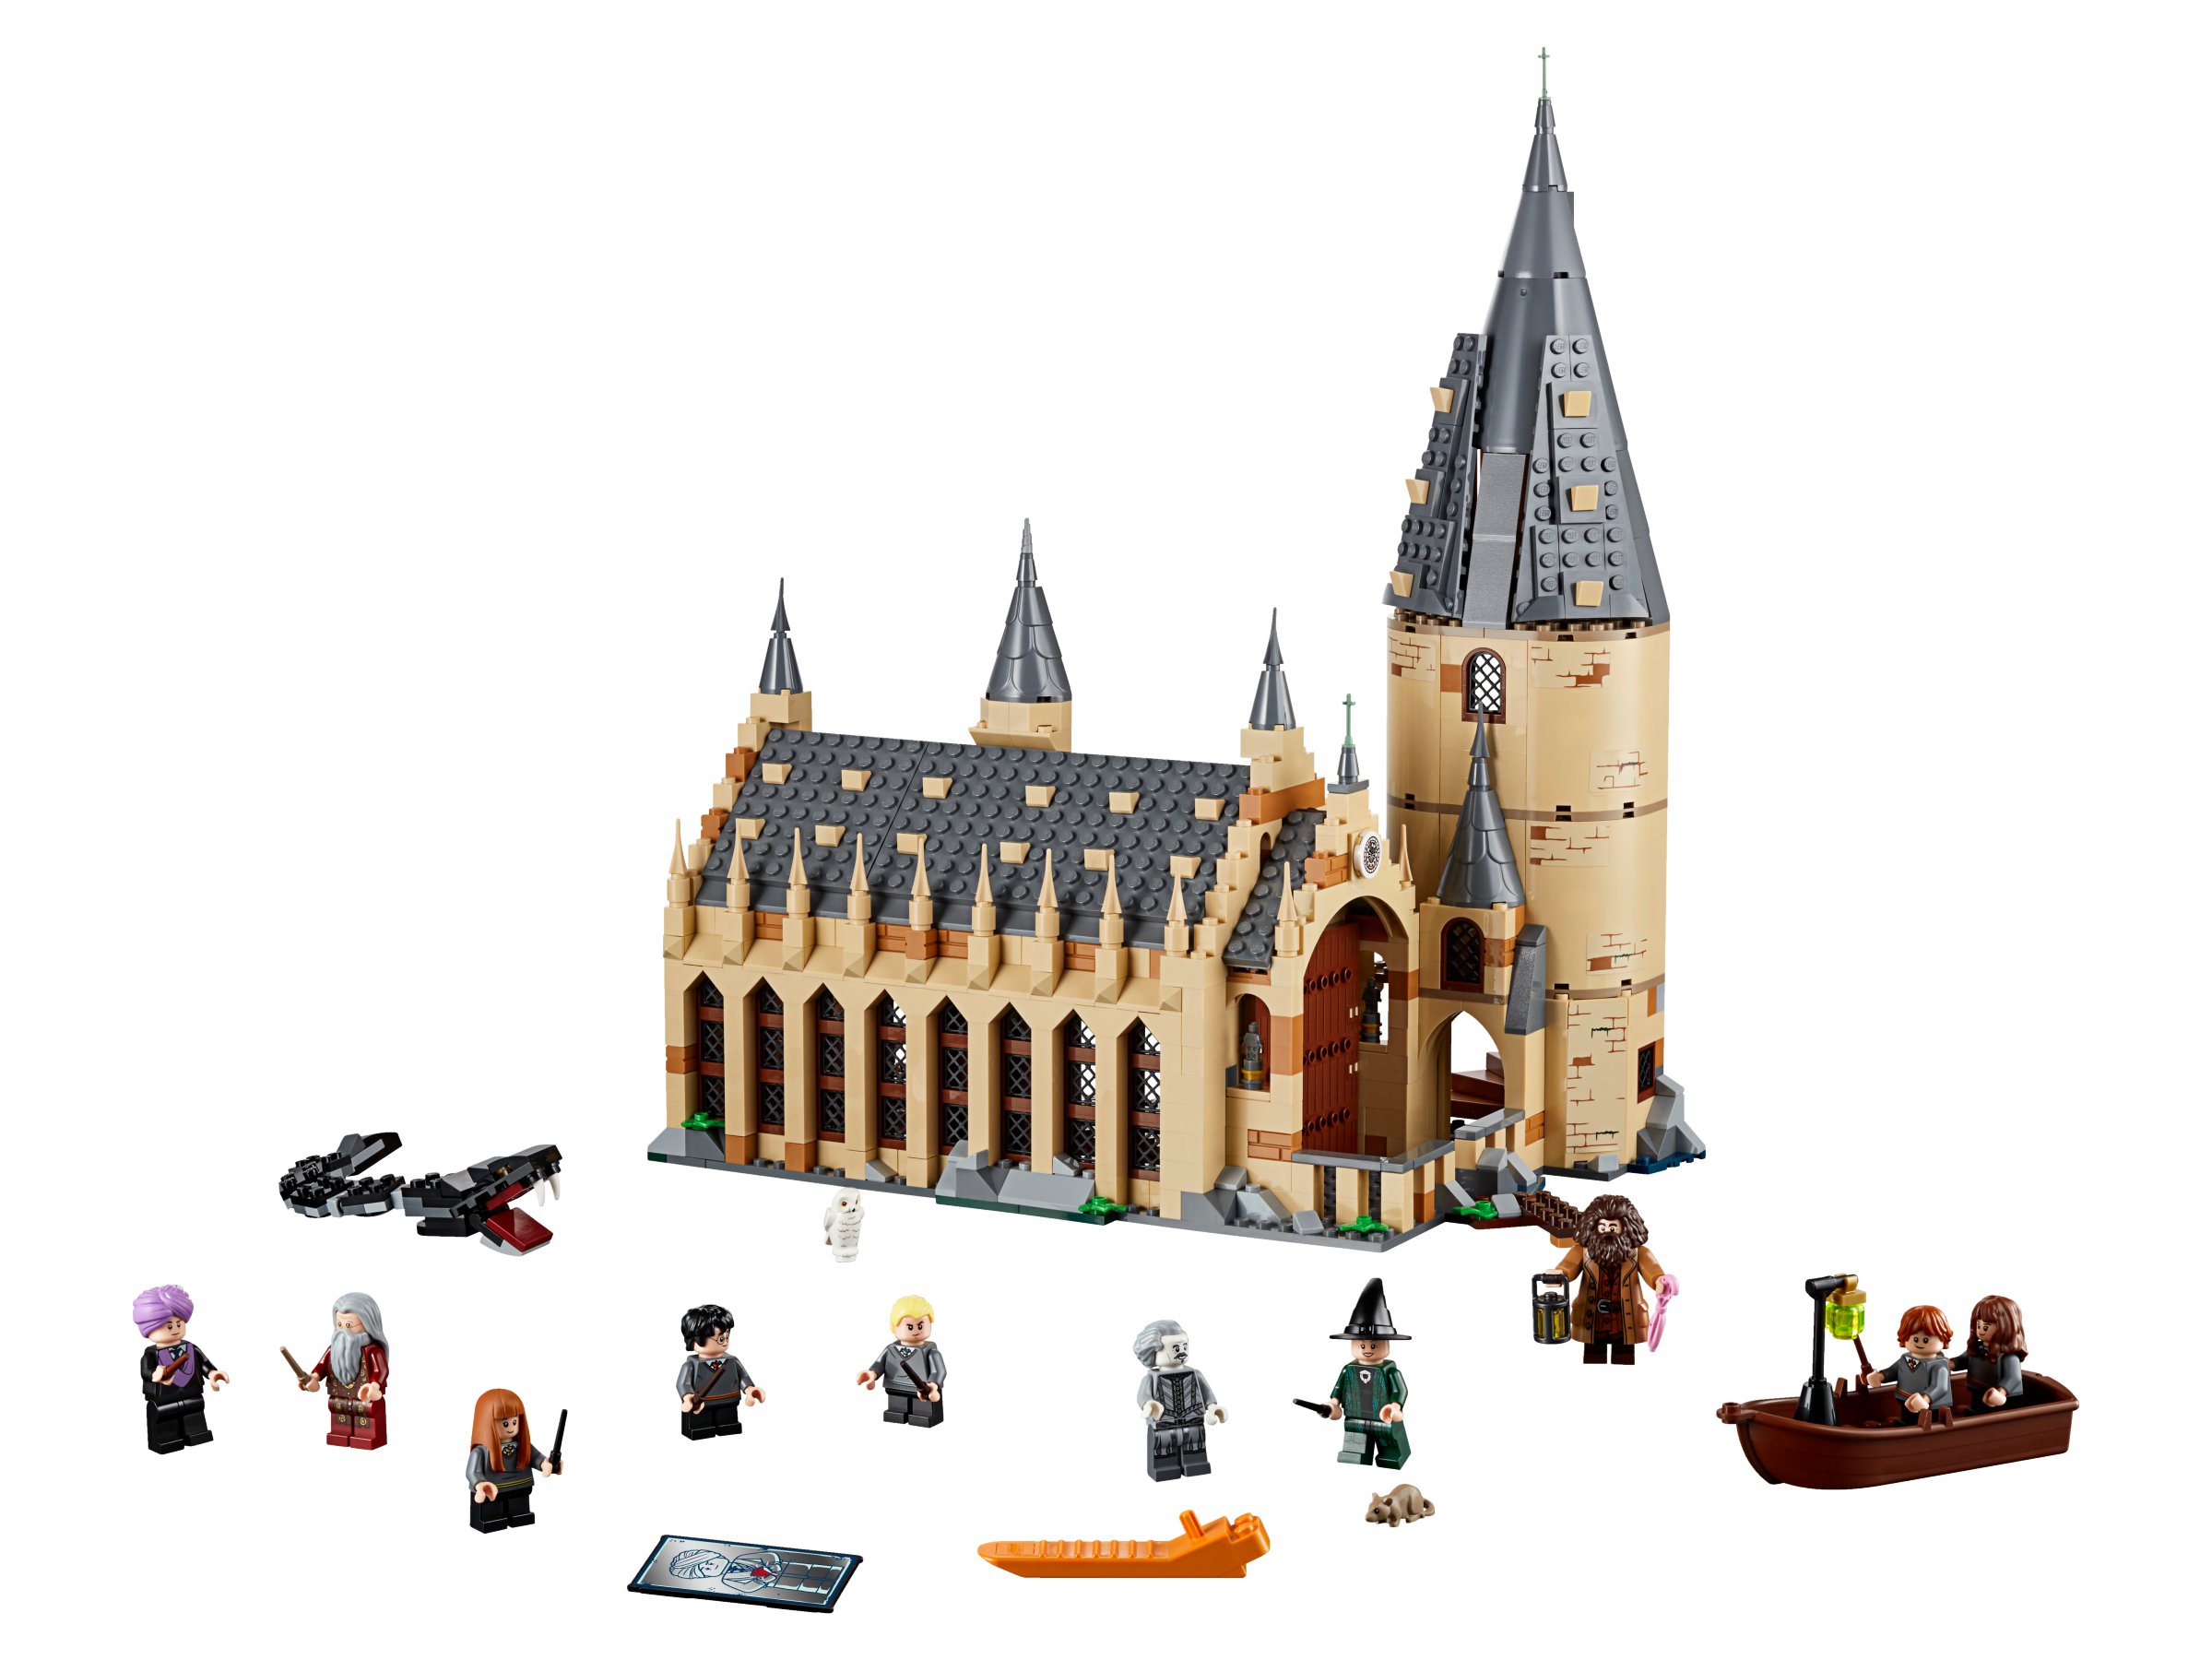 Harry potter building clipart clipart black and white Lego Harry Potter Hogwarts School of Witchcraft and Wizardry Lego ... clipart black and white